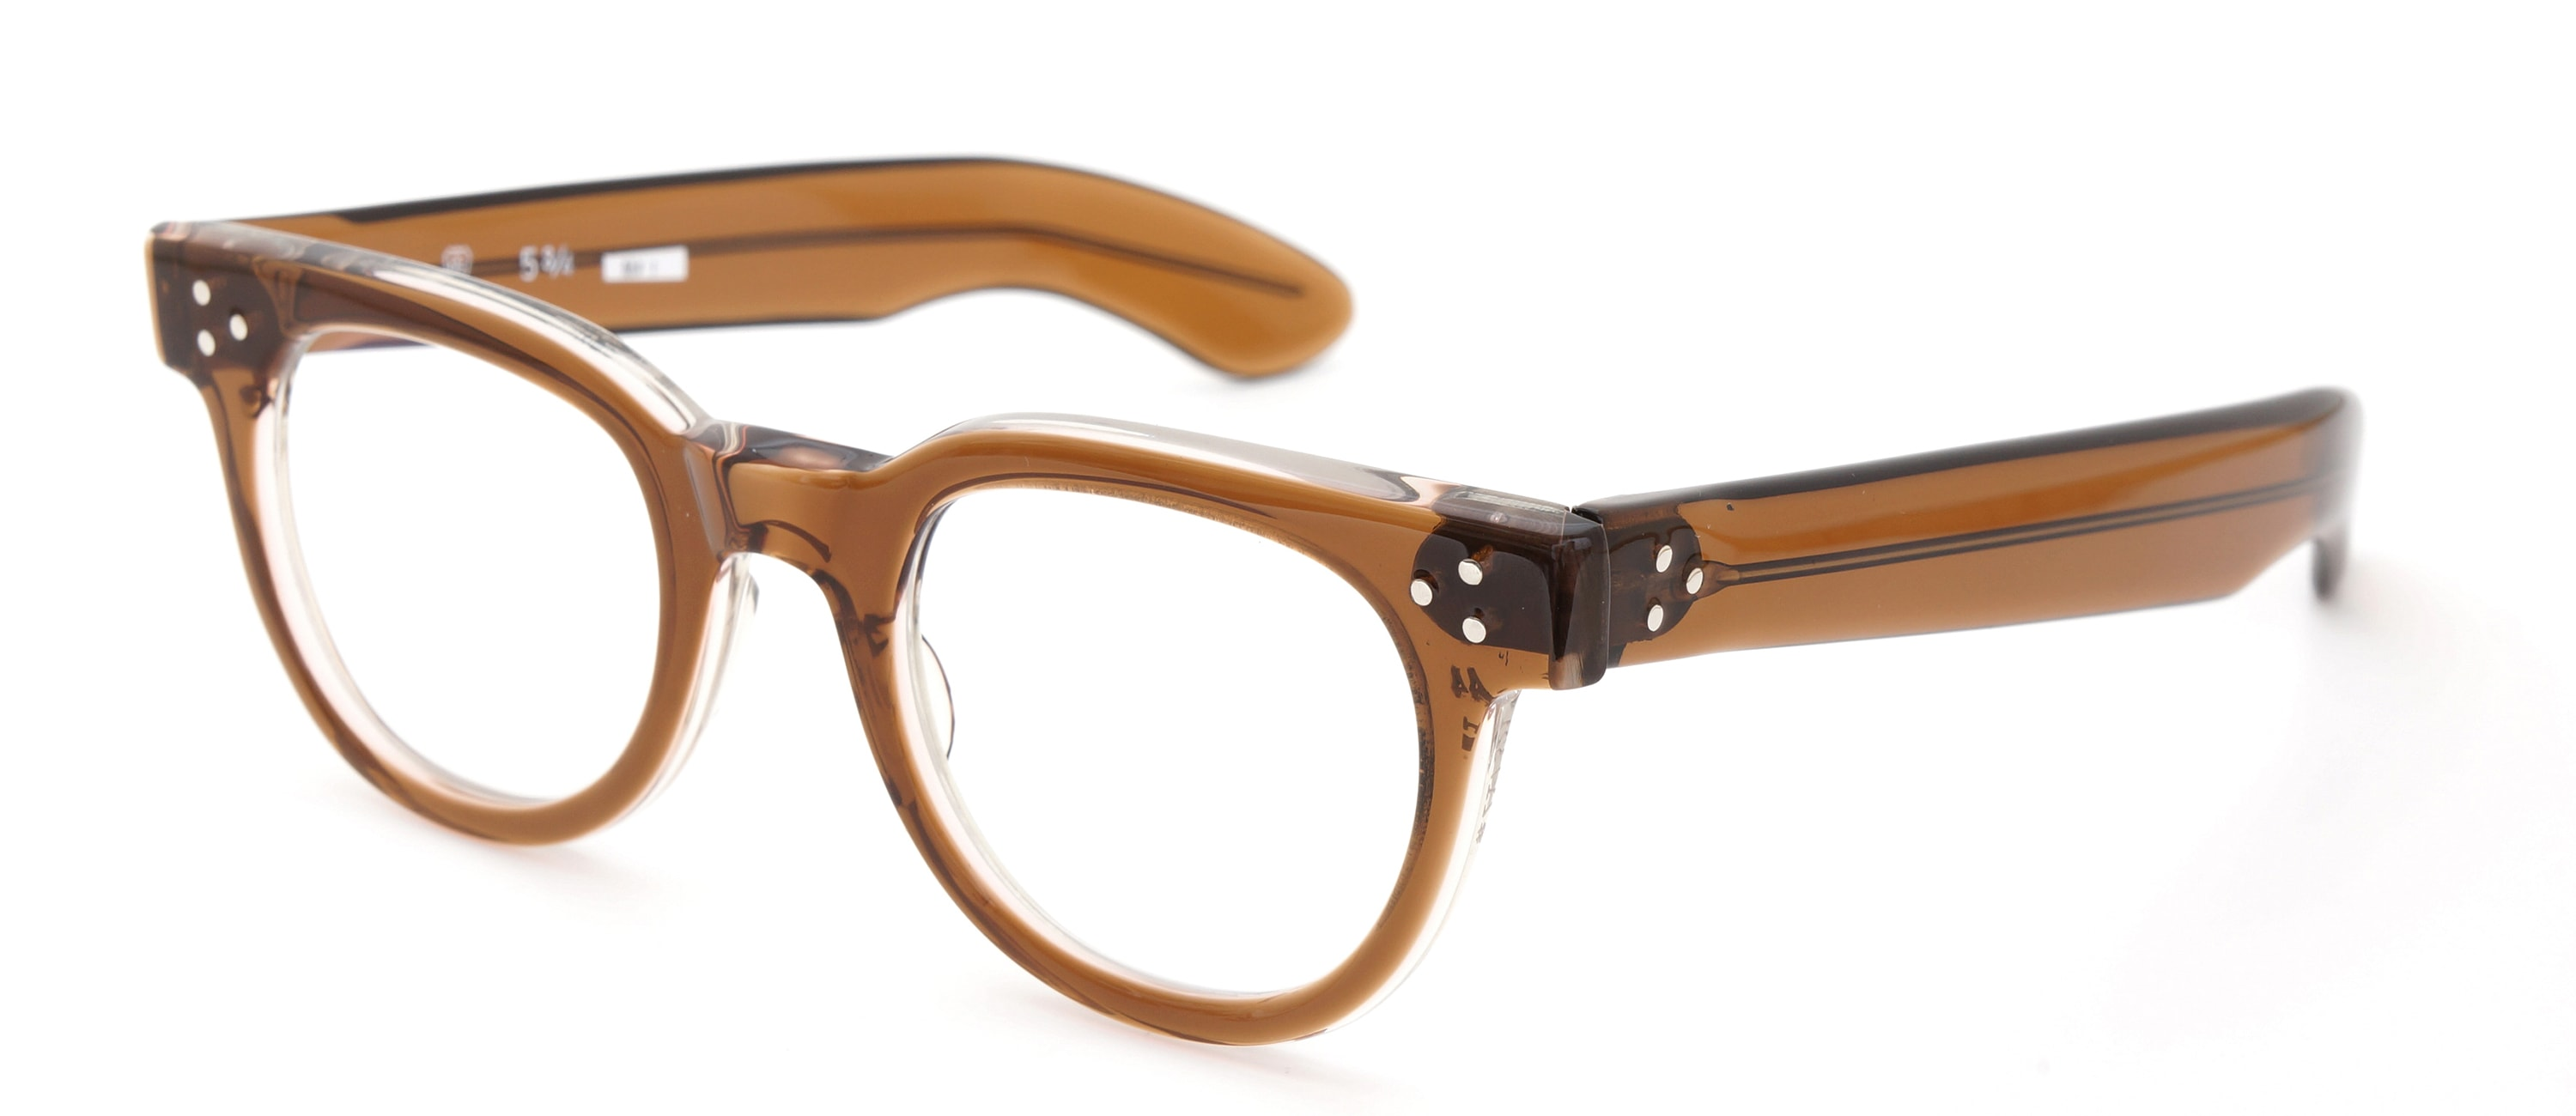 The Spectacle メガネ 1950s-70s TART OPTICAL FDR (FRAME USA) BROWN 44-22 イメージ3